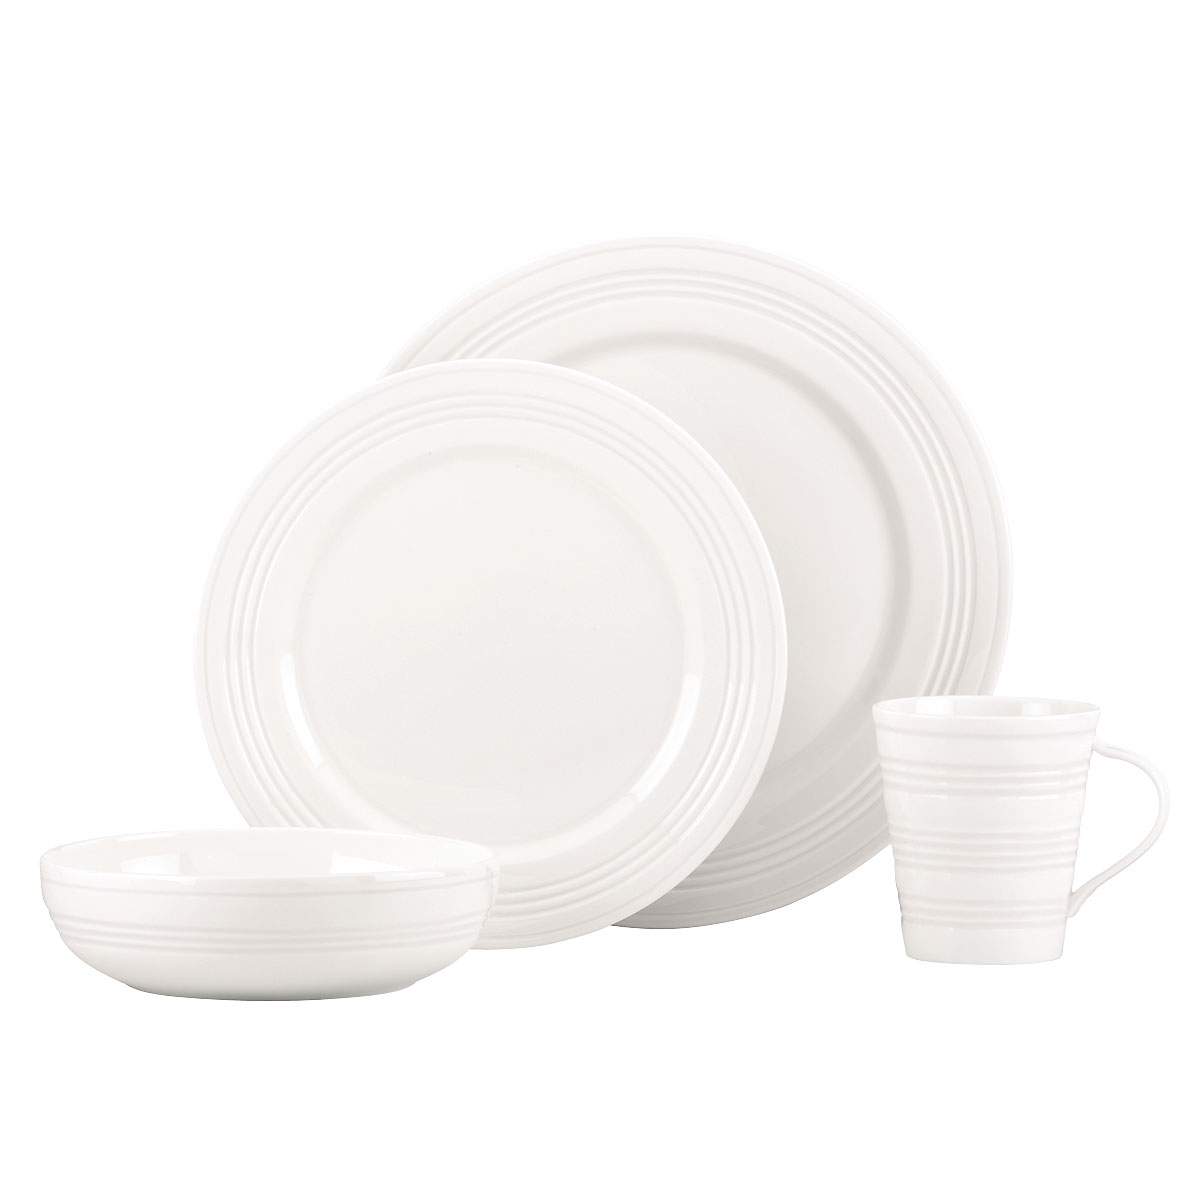 Lenox Tin Can Alley Four Degree, 4 Piece Place Setting